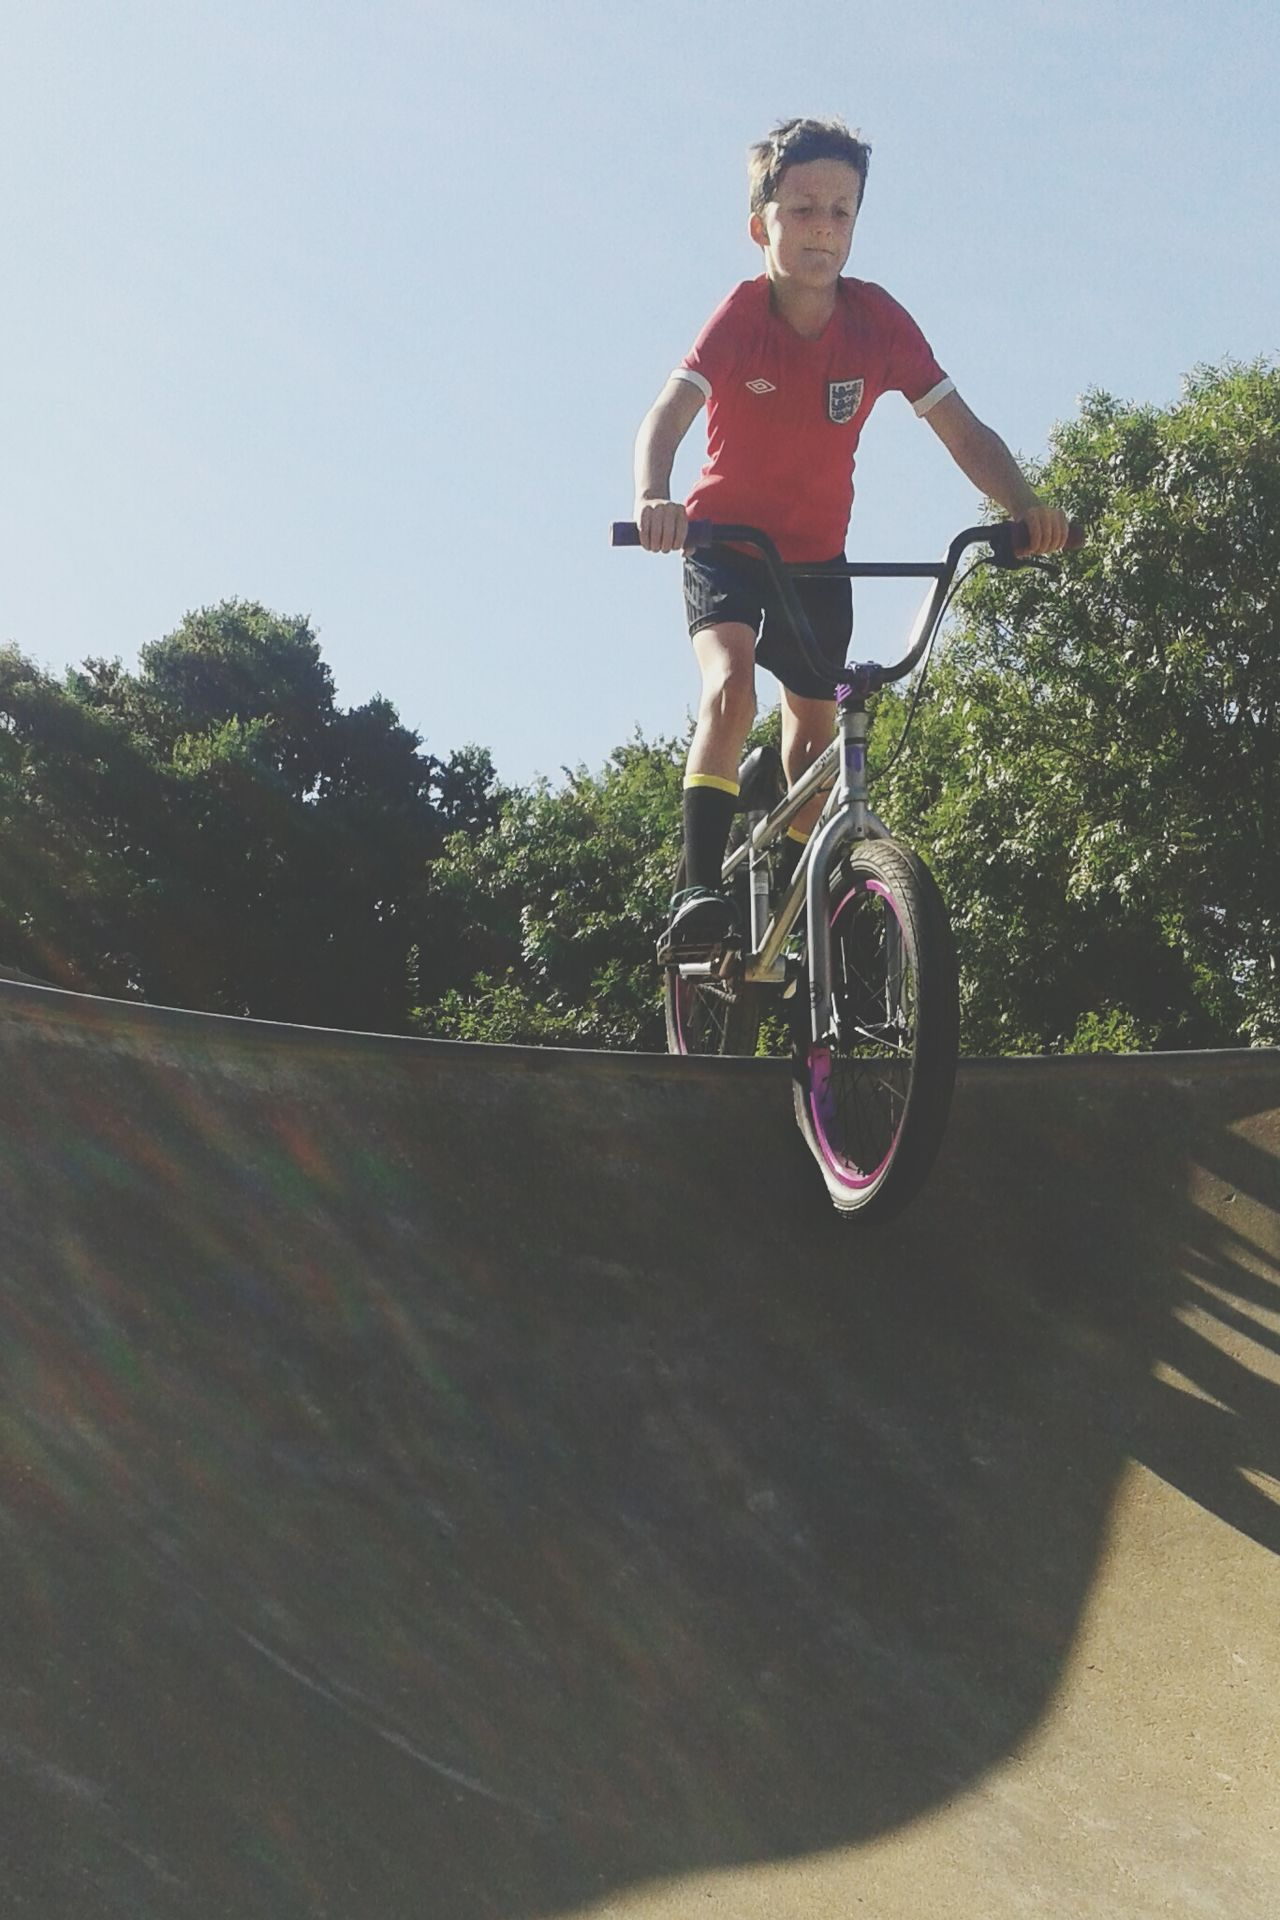 My Son Calum Skate Park Bmx  Dropping In